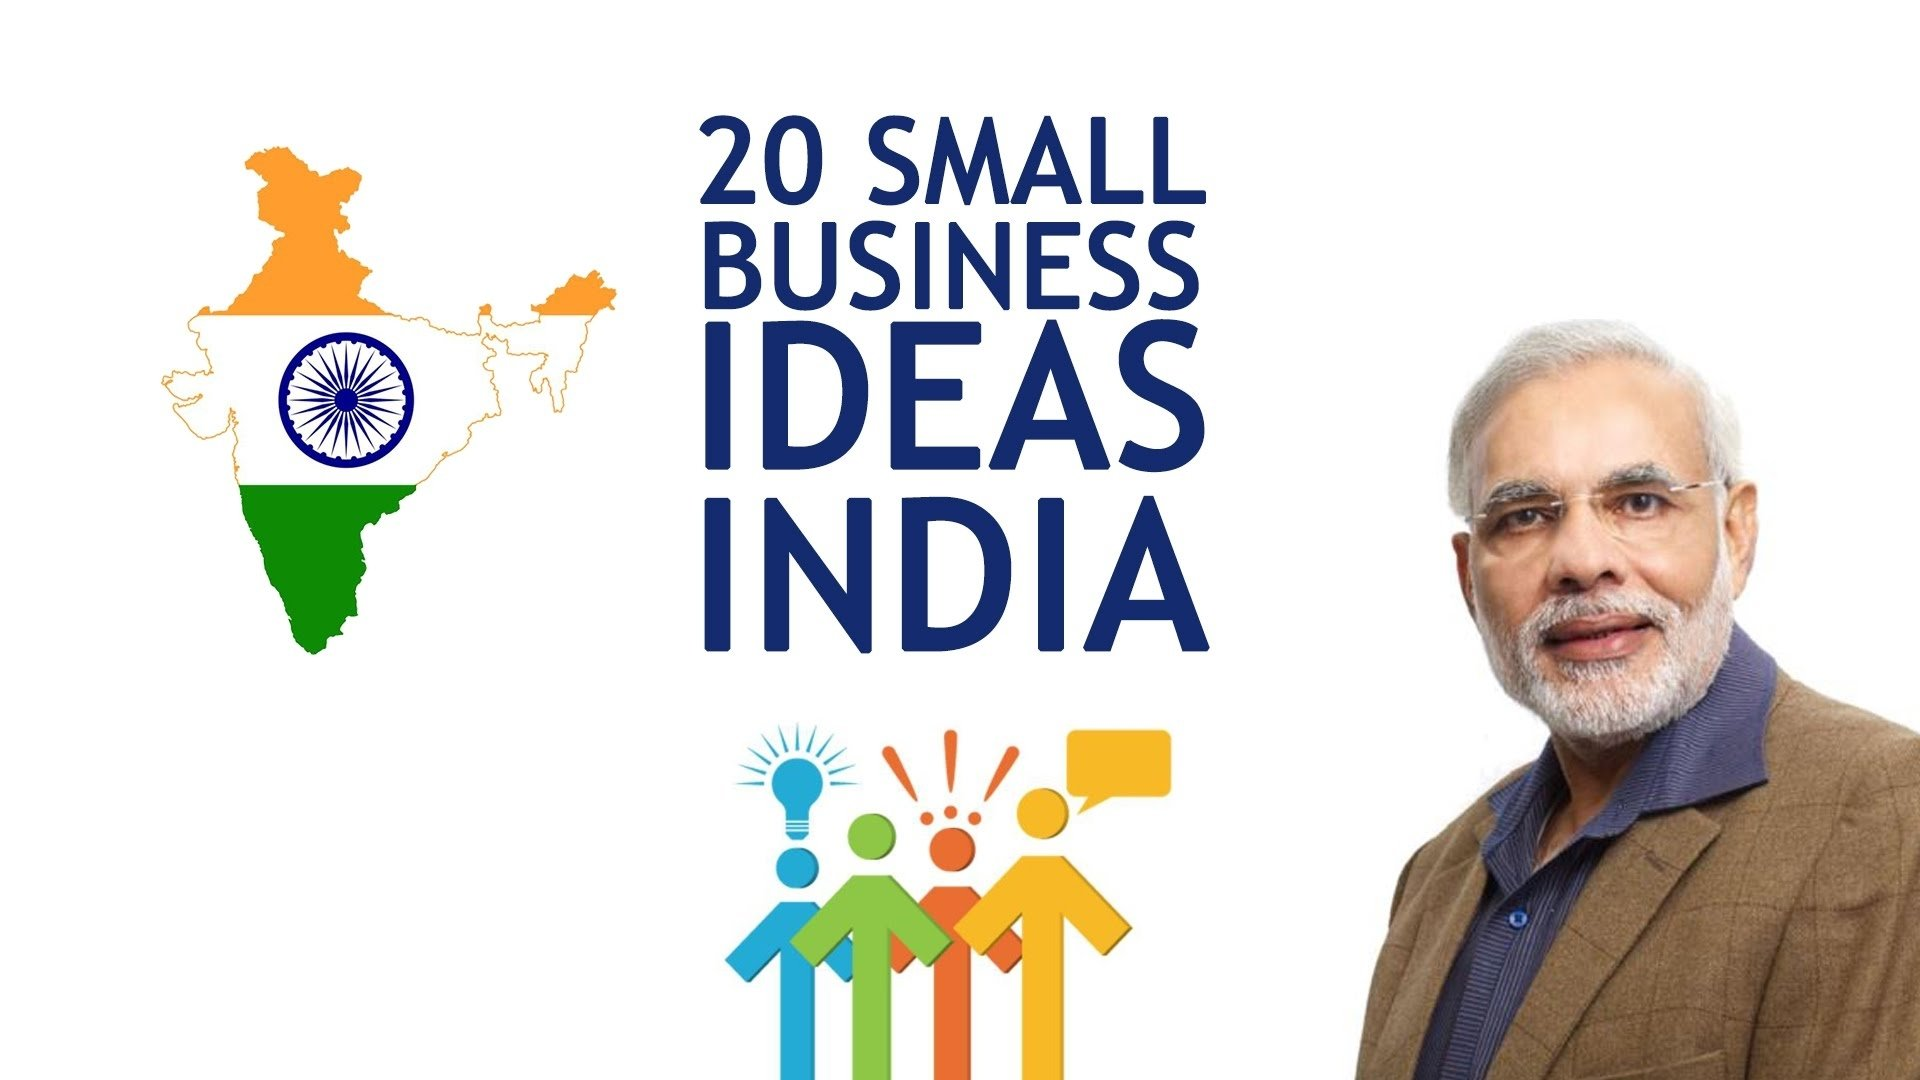 10 Spectacular Small Business Ideas In India top 20 best small business ideas in india youtube 4 2021